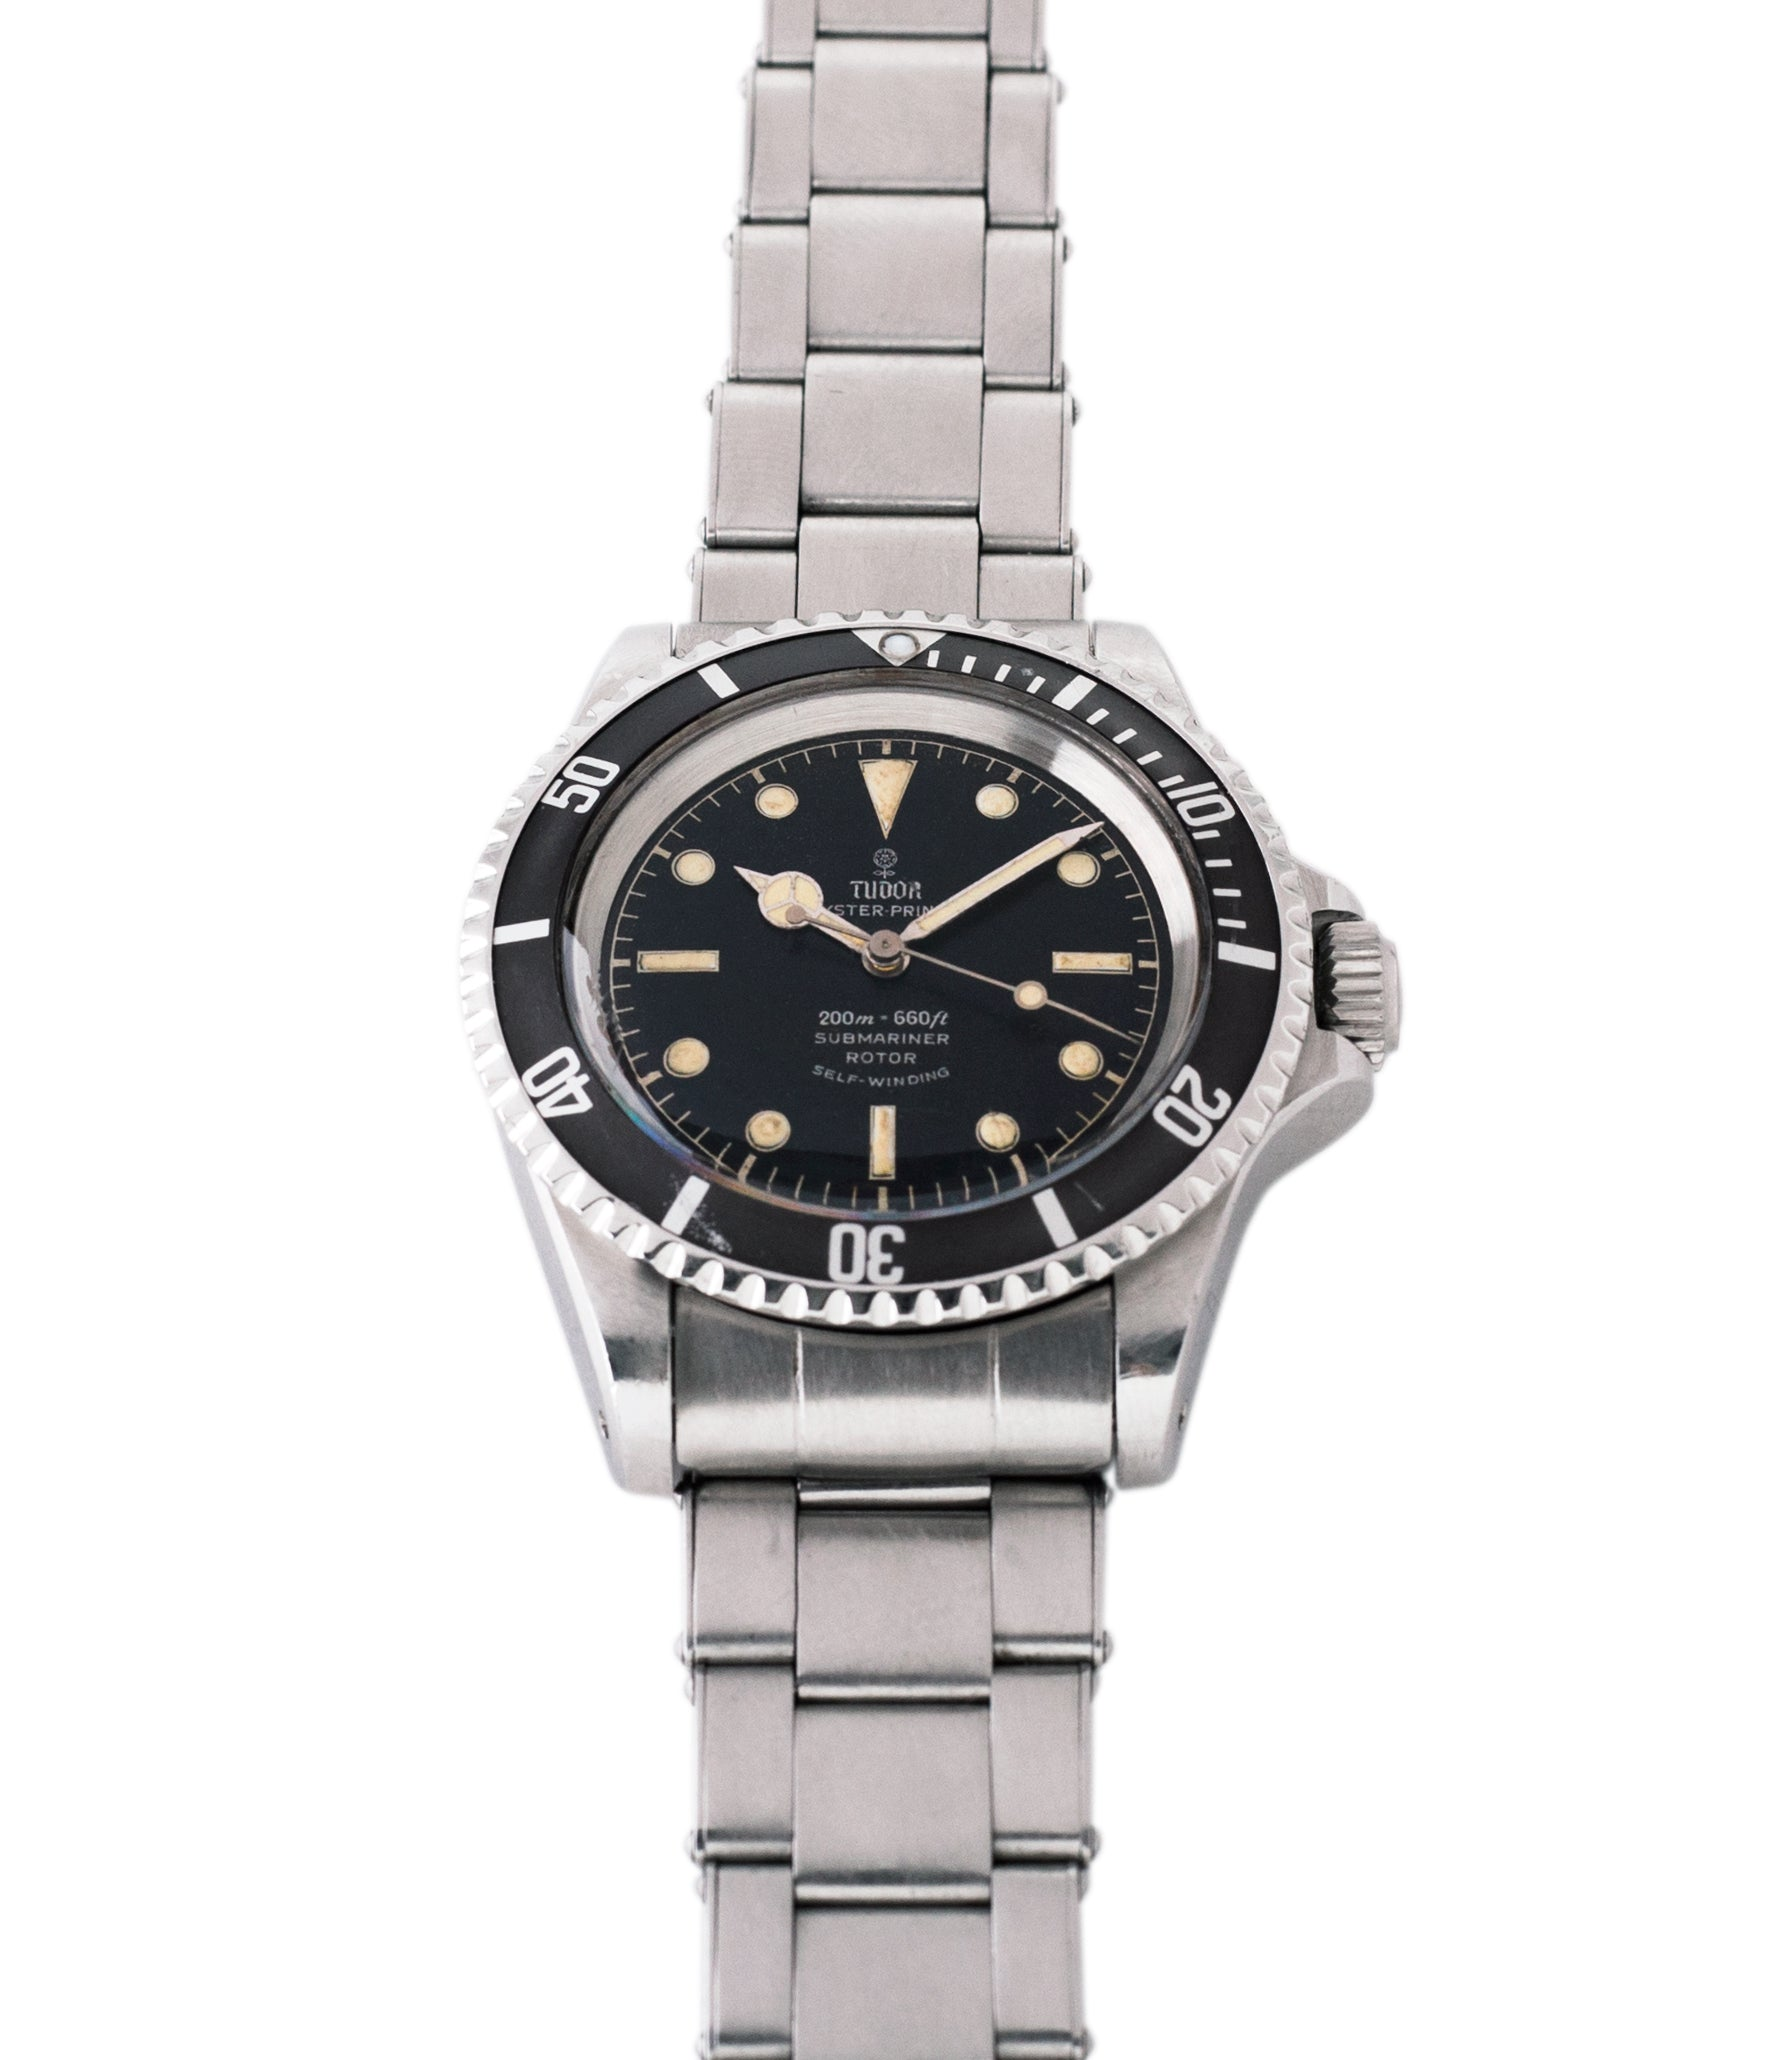 Submariner 7928 Tudor Oyster Prince Cal. 390 automatic sport watch at A Collected Man London online vintage watch specialist UK